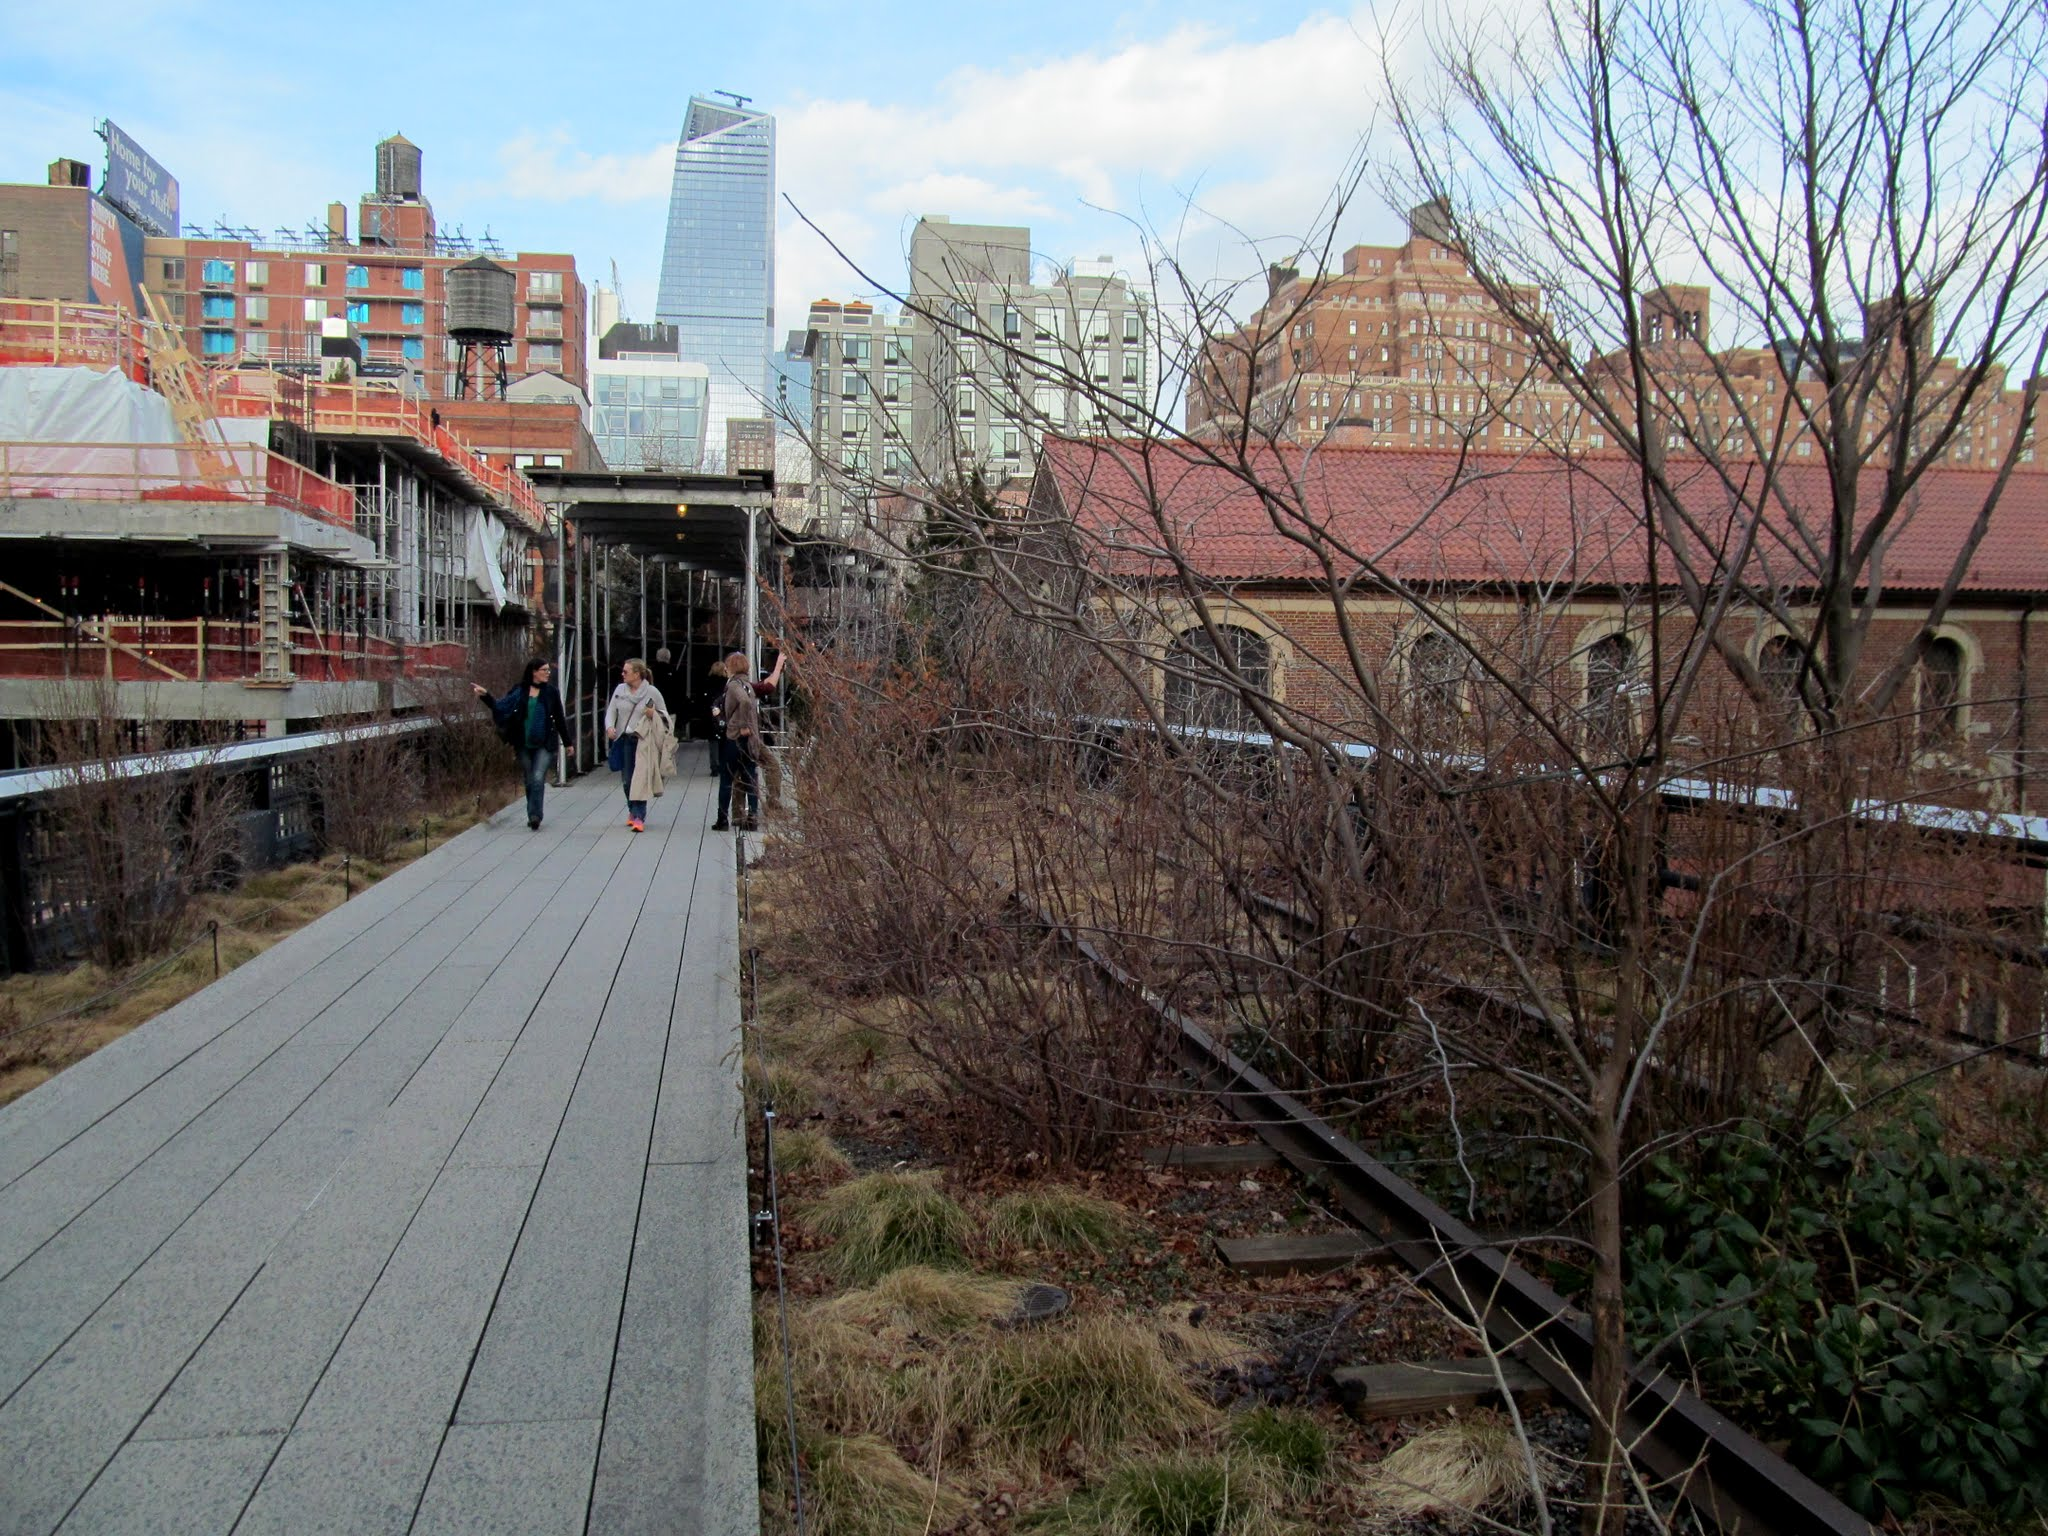 Photo: The High Line